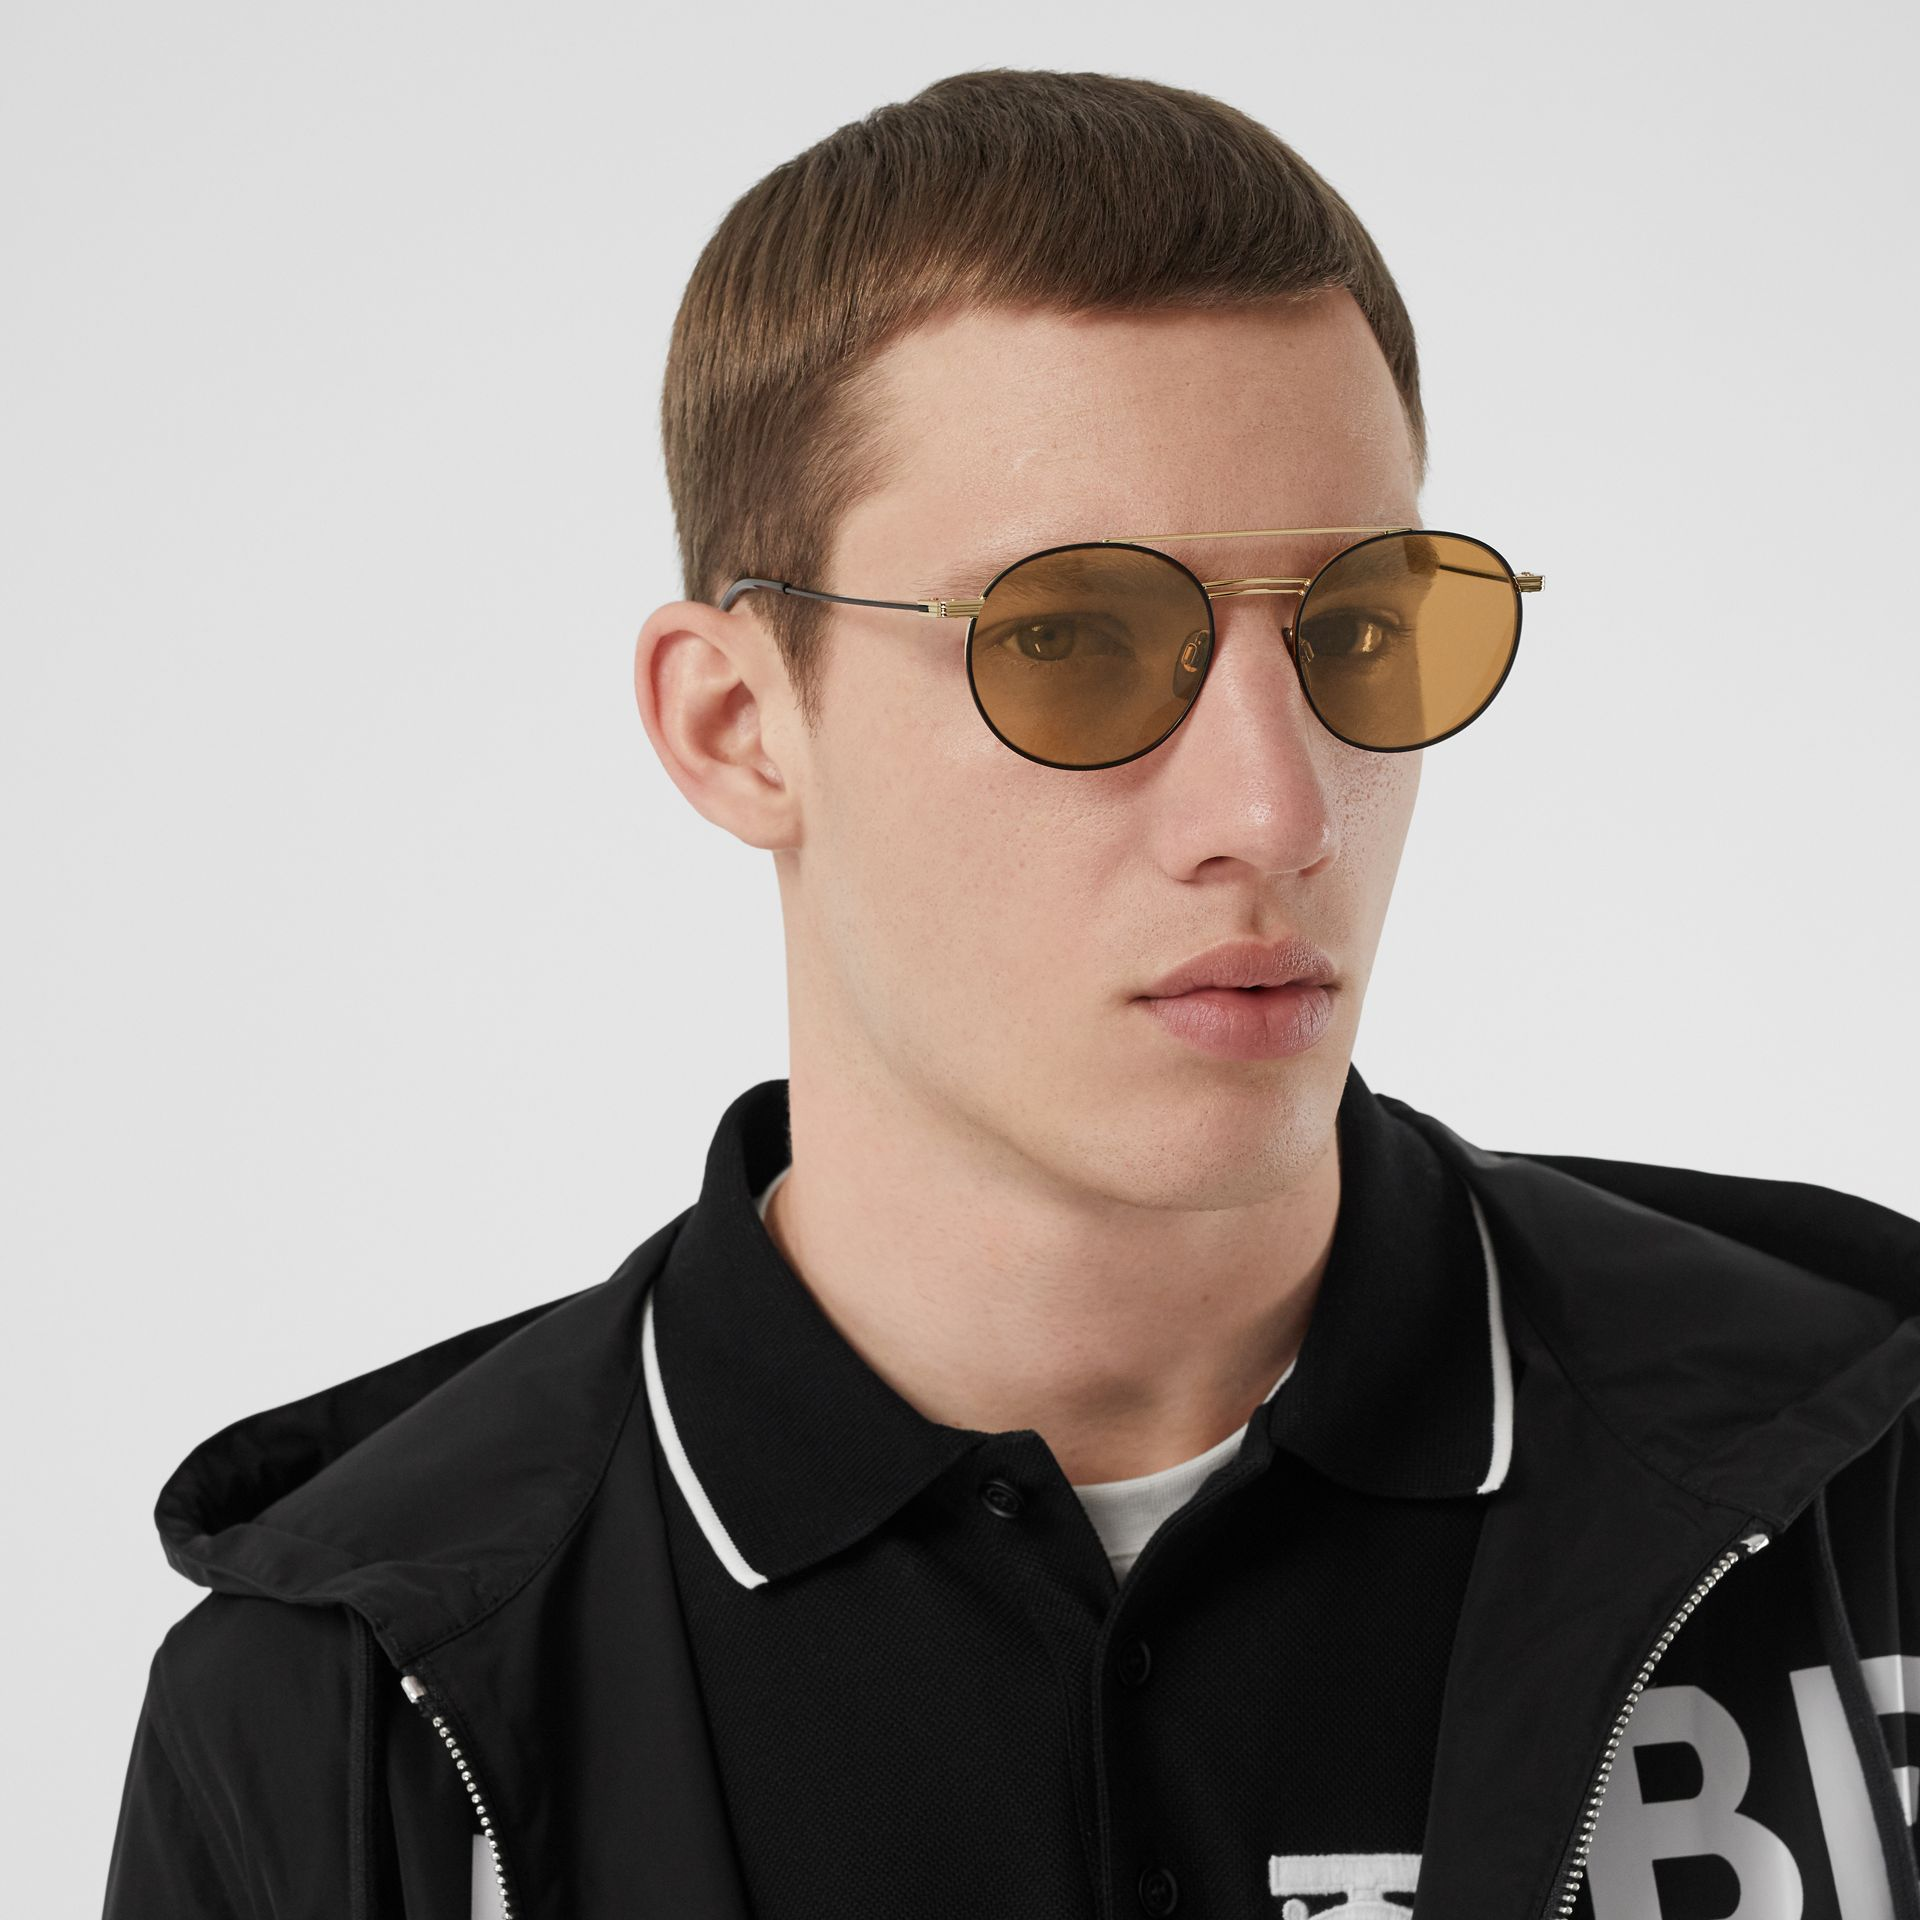 Top Bar Detail Round Frame Sunglasses in Tortoiseshell - Men | Burberry Singapore - gallery image 2